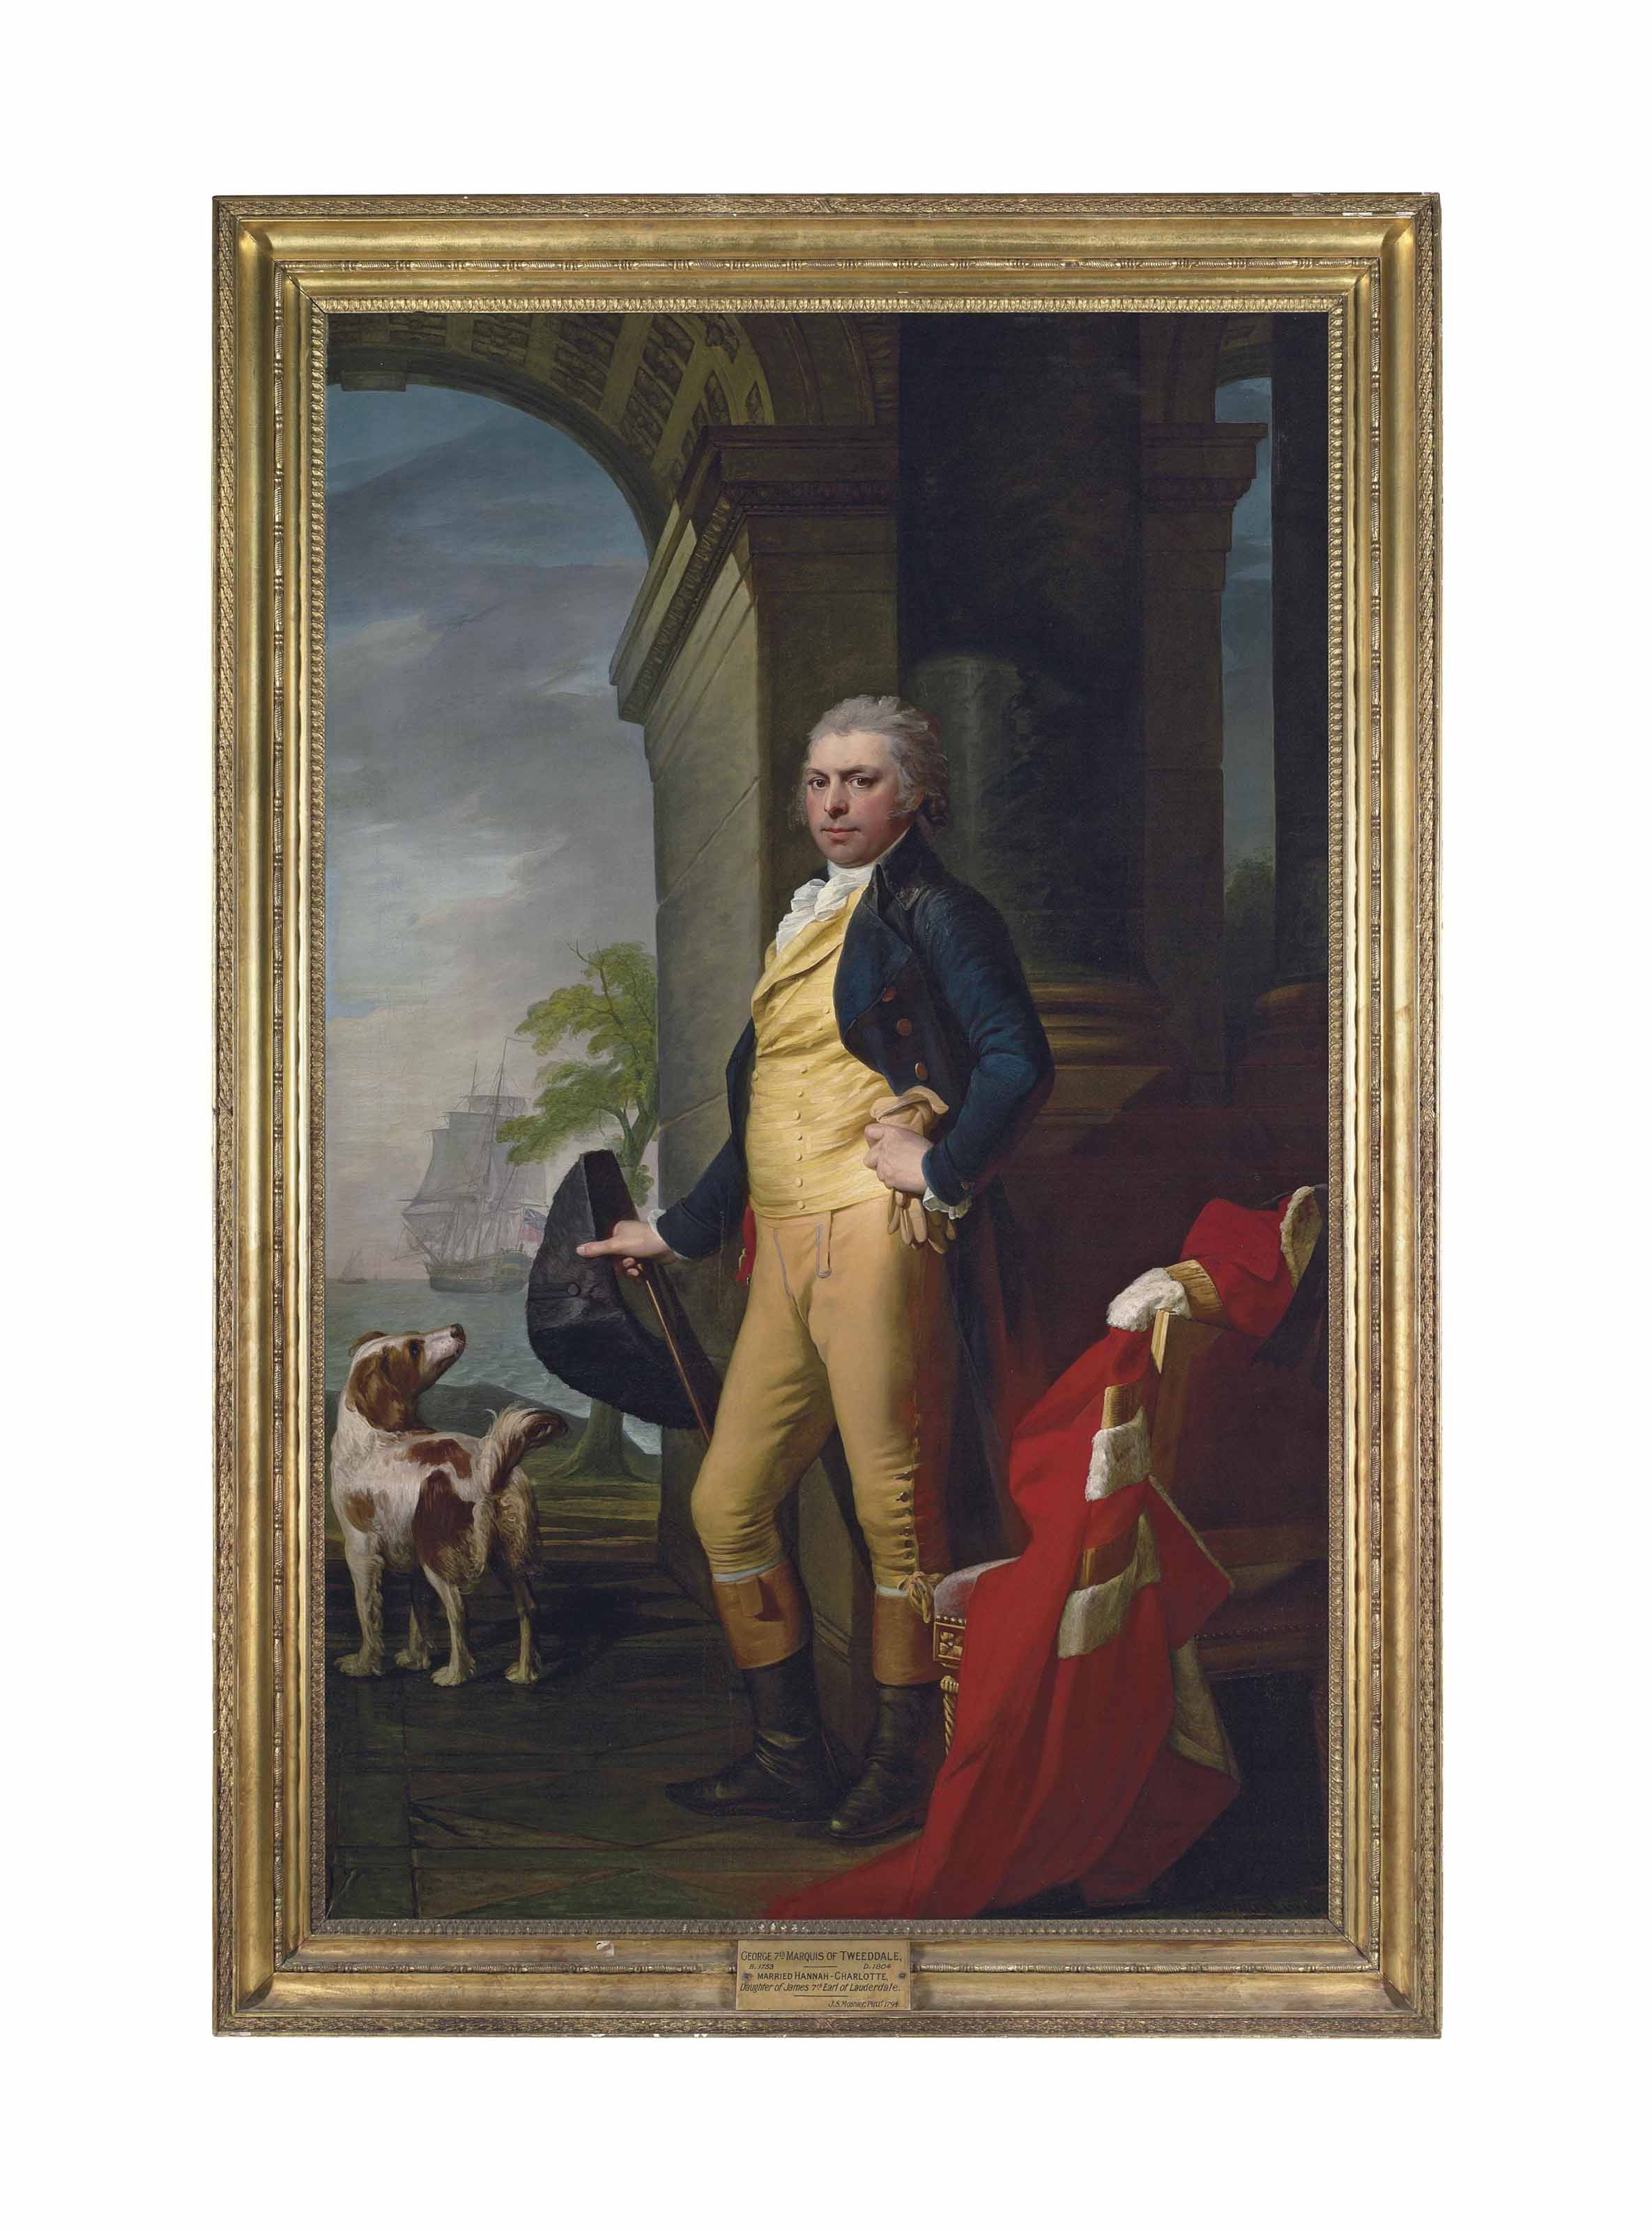 Portrait of George Hay (1753-1804), 7th Marquess of Tweeddale, full-length, in a blue coat, a gold waistcoat and a white stock, holding a top hat and a cane, his peer's robes on the chair beside him, with a hound, a ship at sea beyond